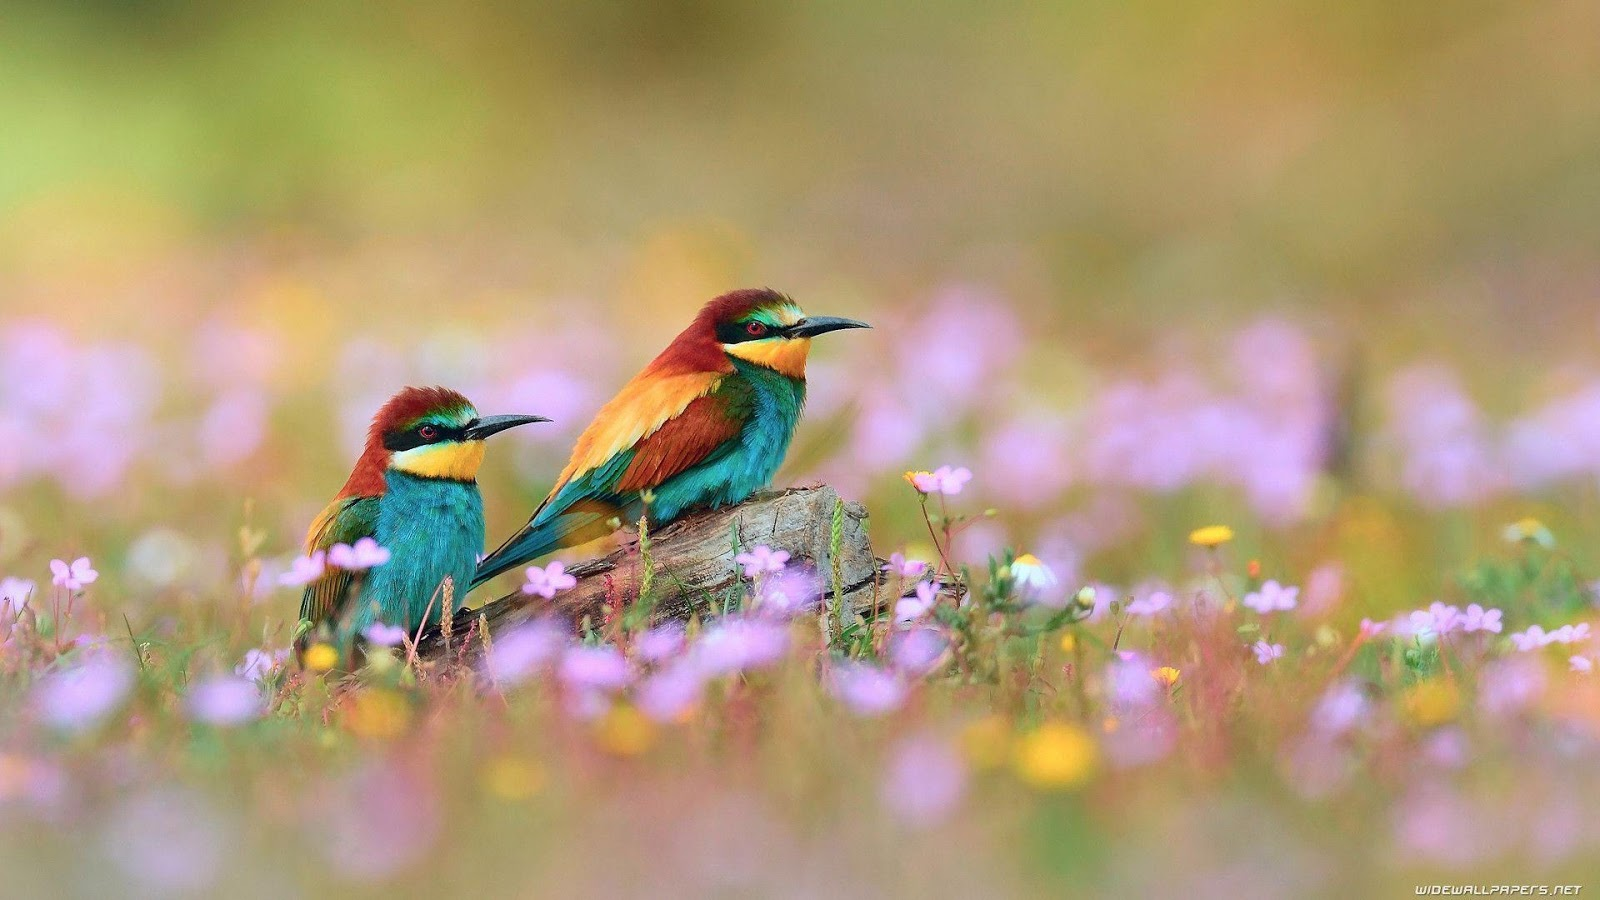 A selection of  Image of Birds in HD quality